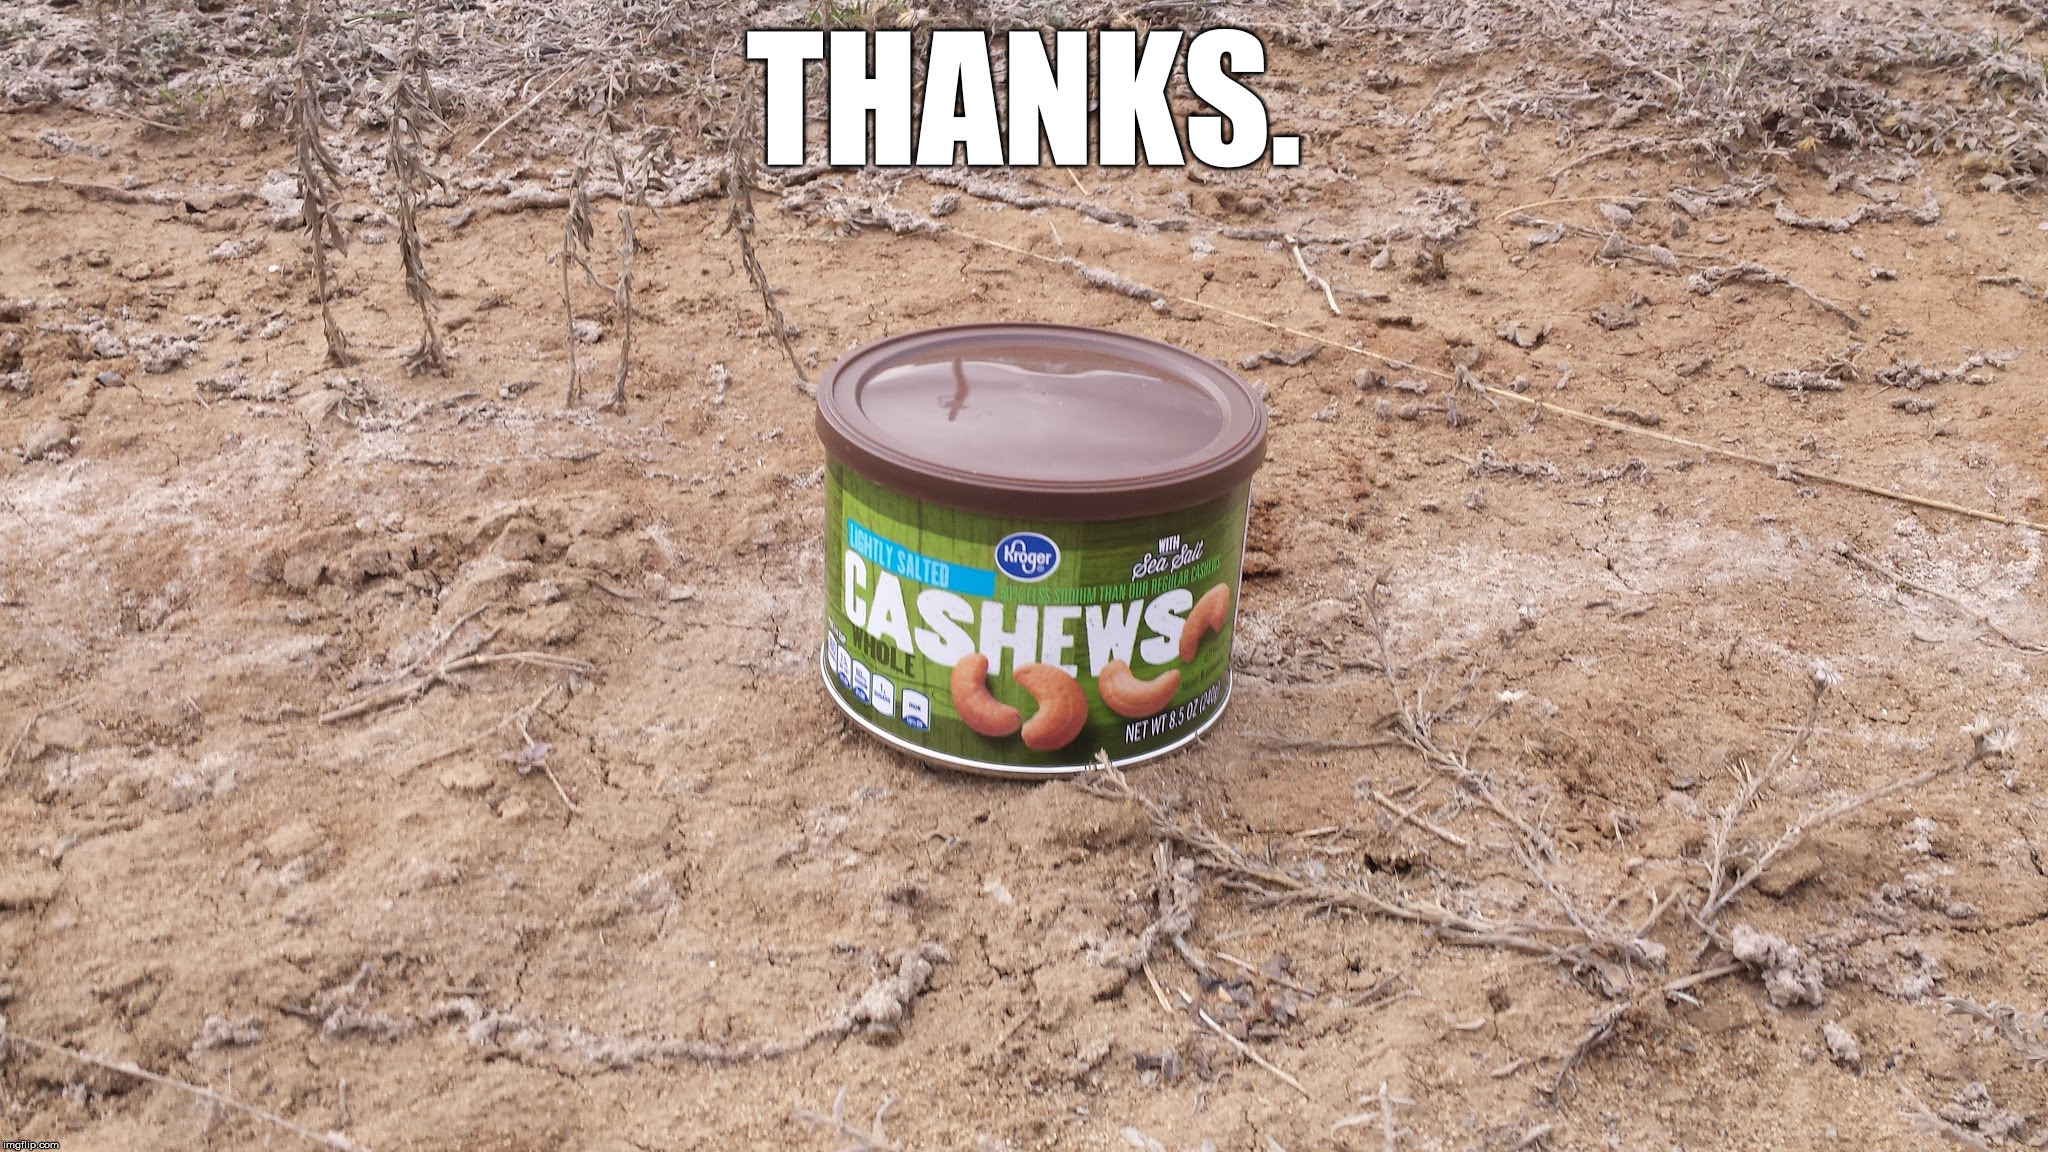 Cashew outside | THANKS. | image tagged in cashew outside | made w/ Imgflip meme maker